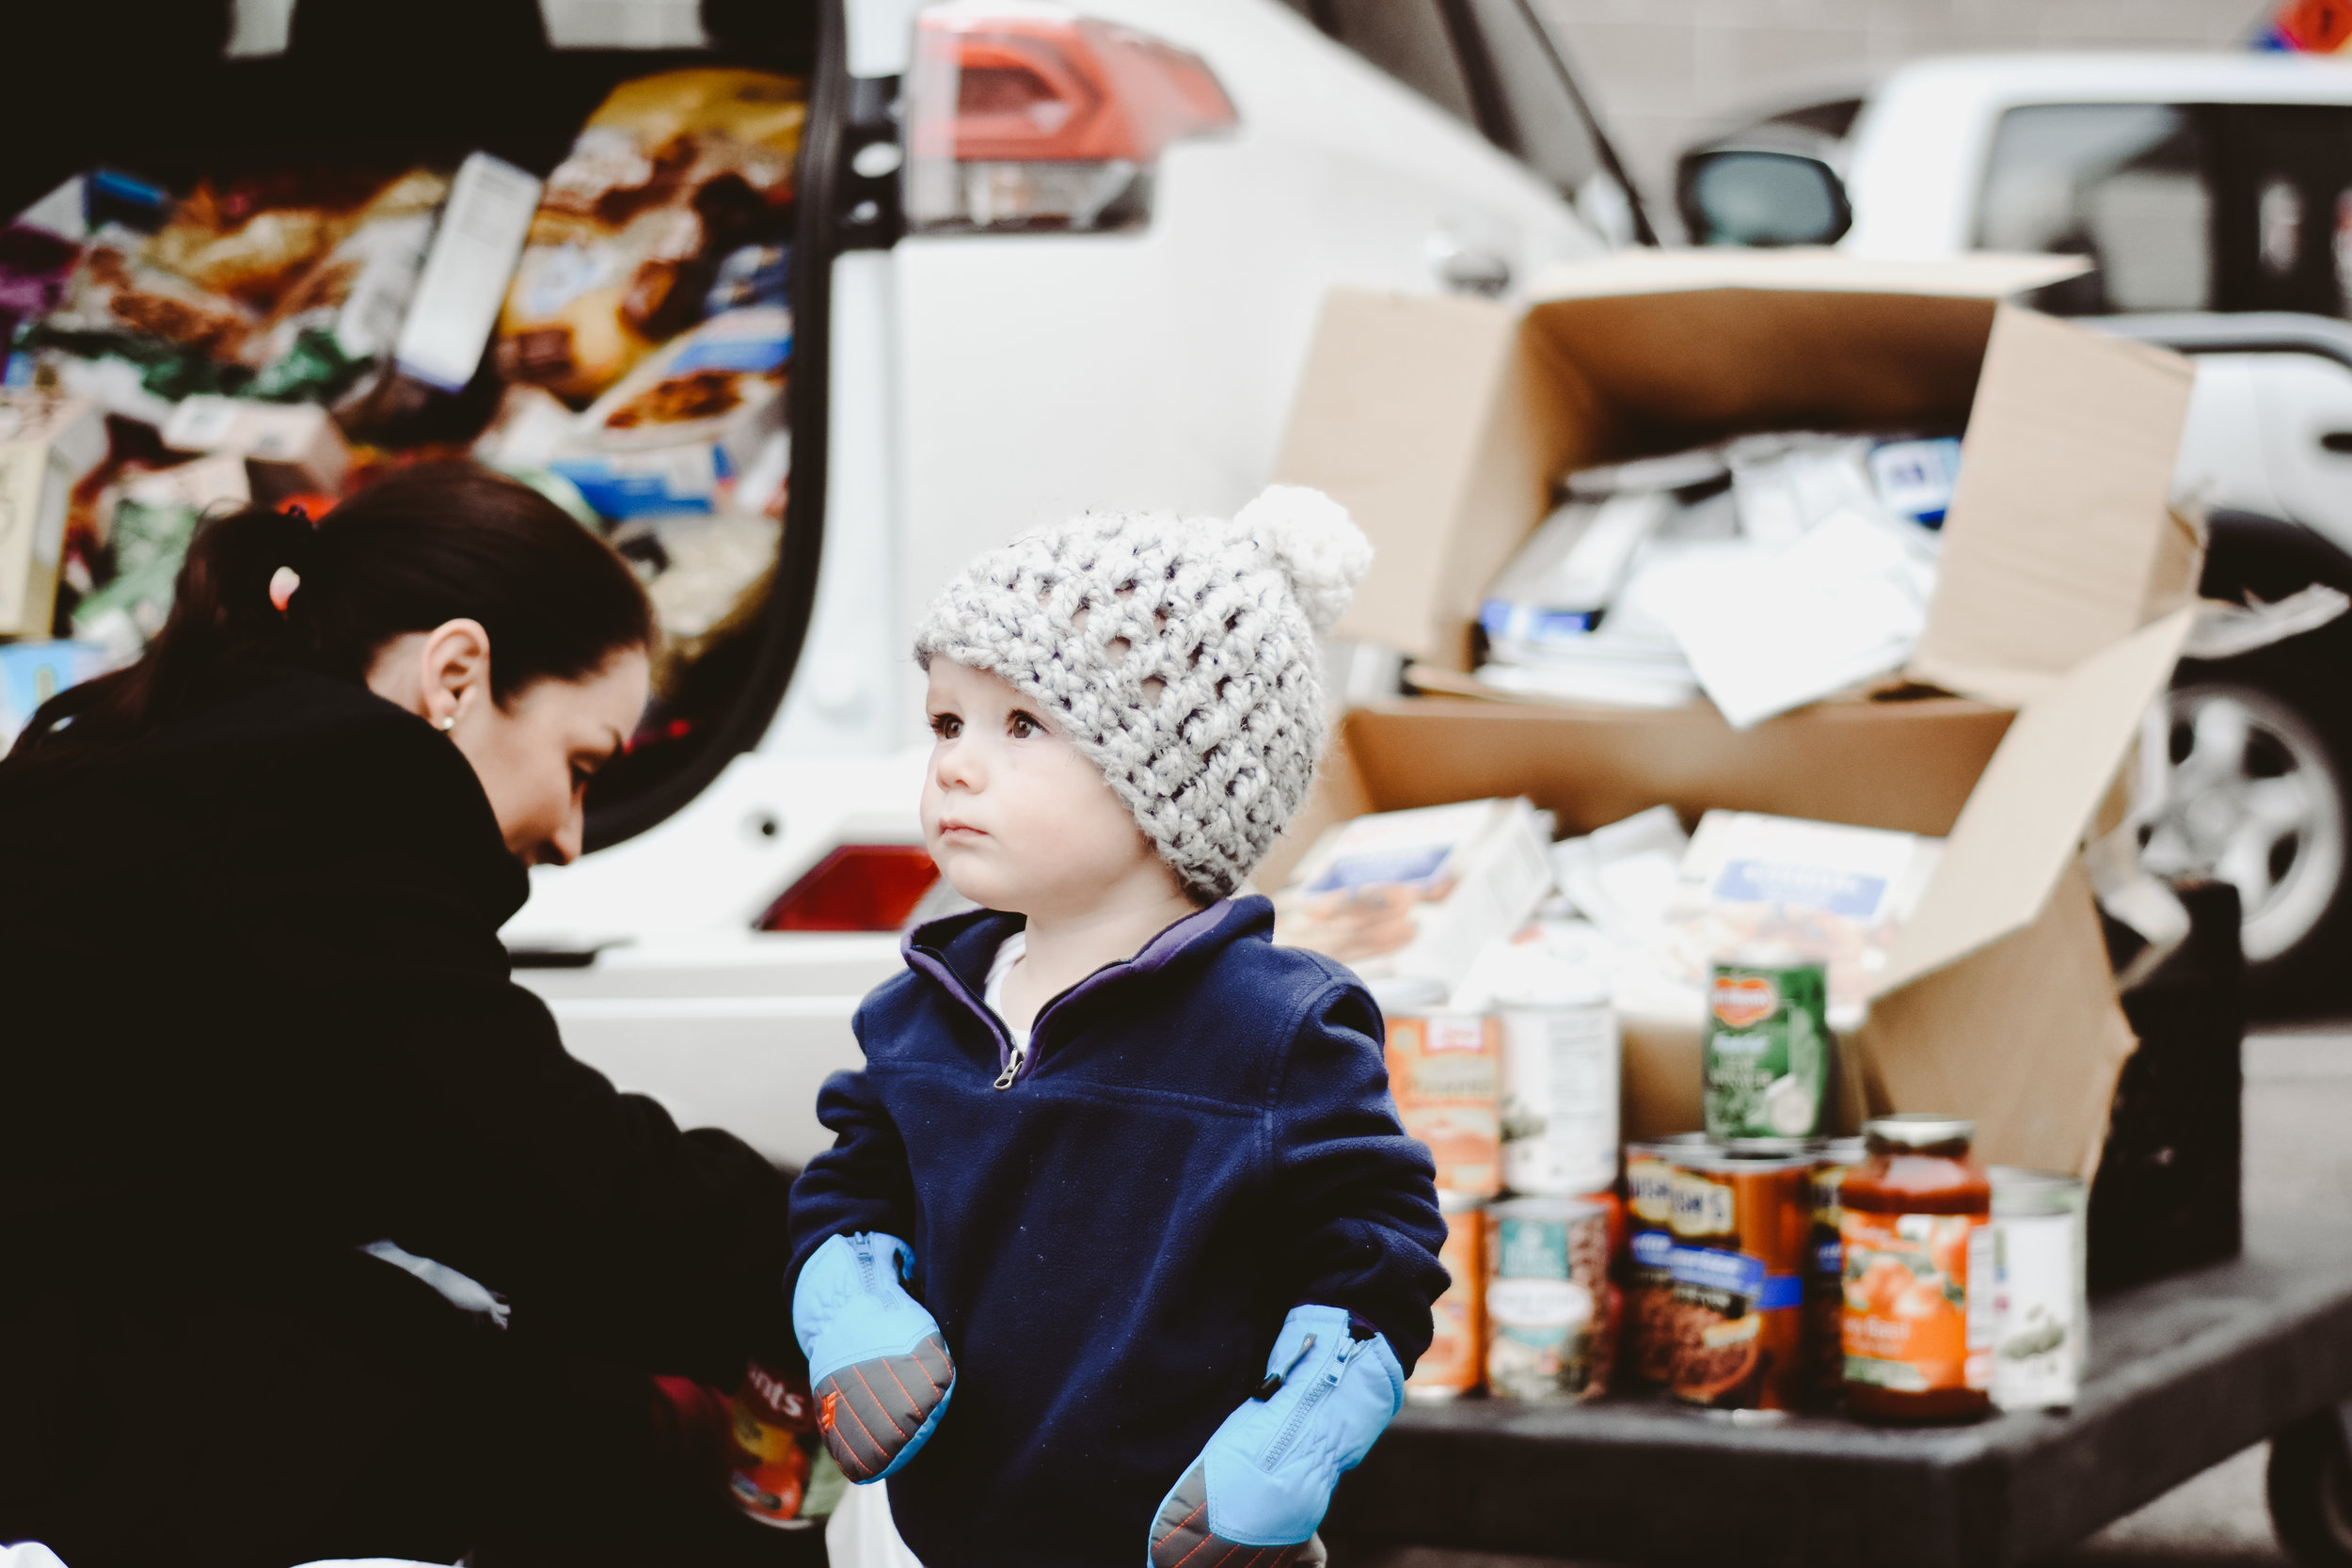 Season of Giving at the Denver Rescue Mission